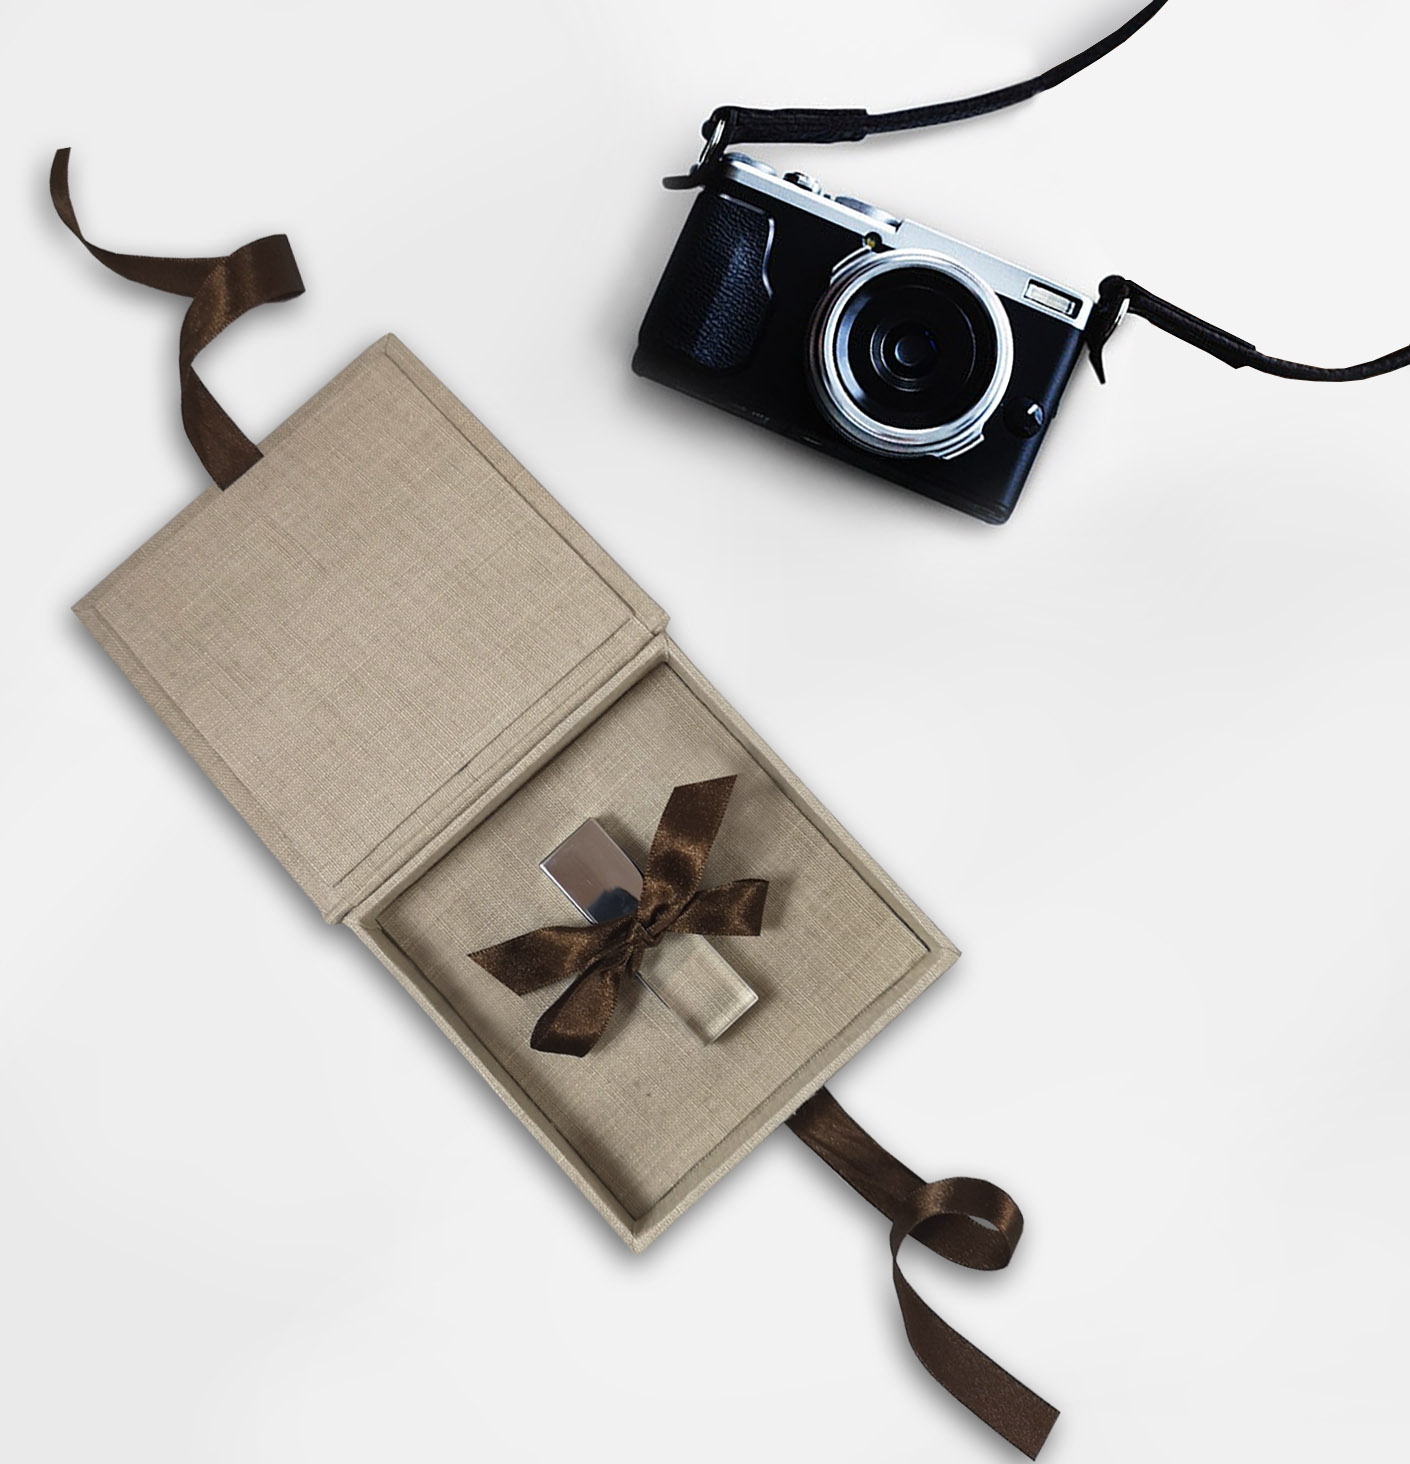 Custom USB Linen Box By Dennis Wisser